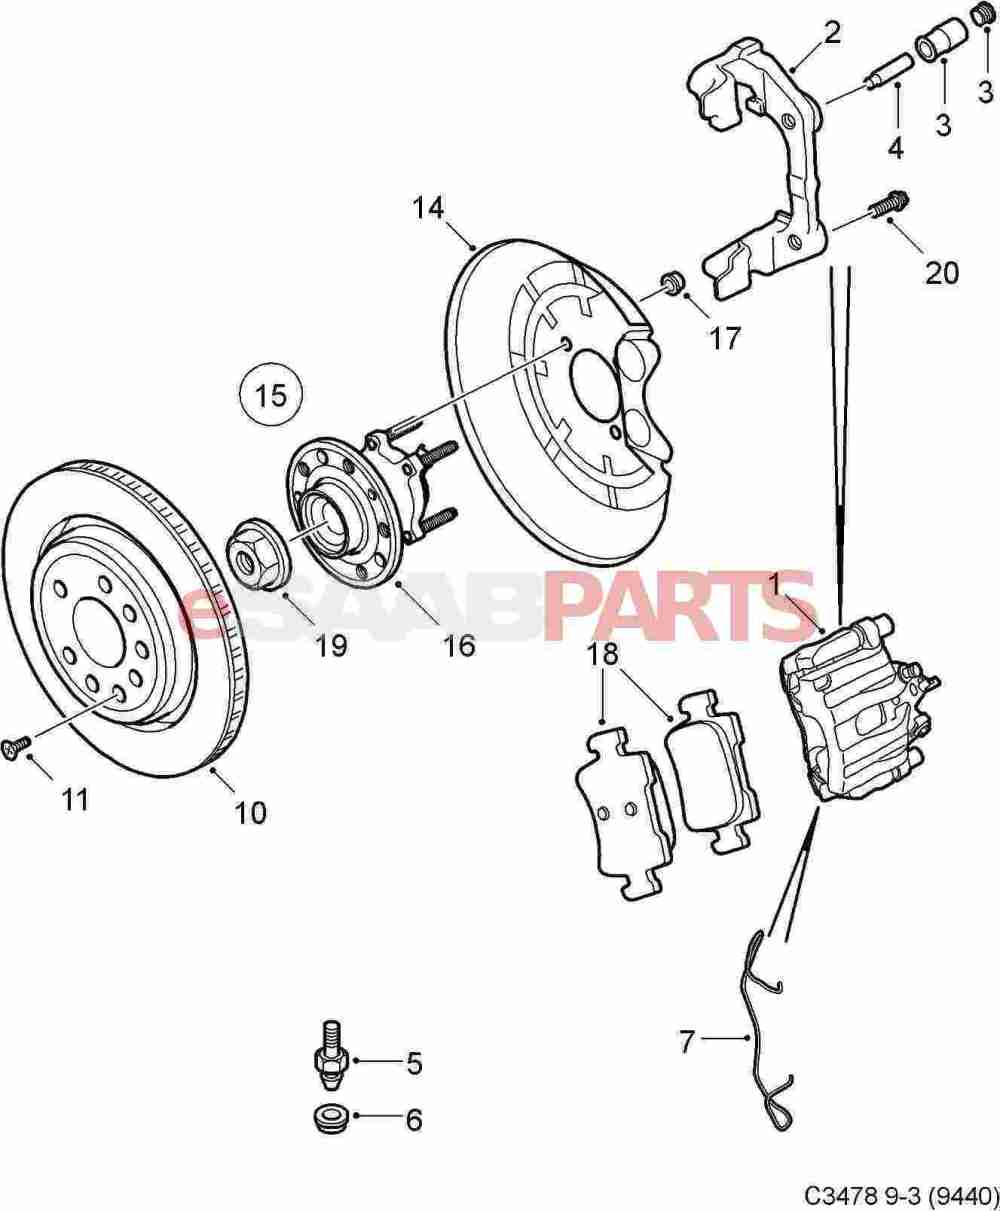 medium resolution of saab brakes diagram online wiring diagram93172185 saab brake caliper right rear 292mm brakes genuinesaab brakes